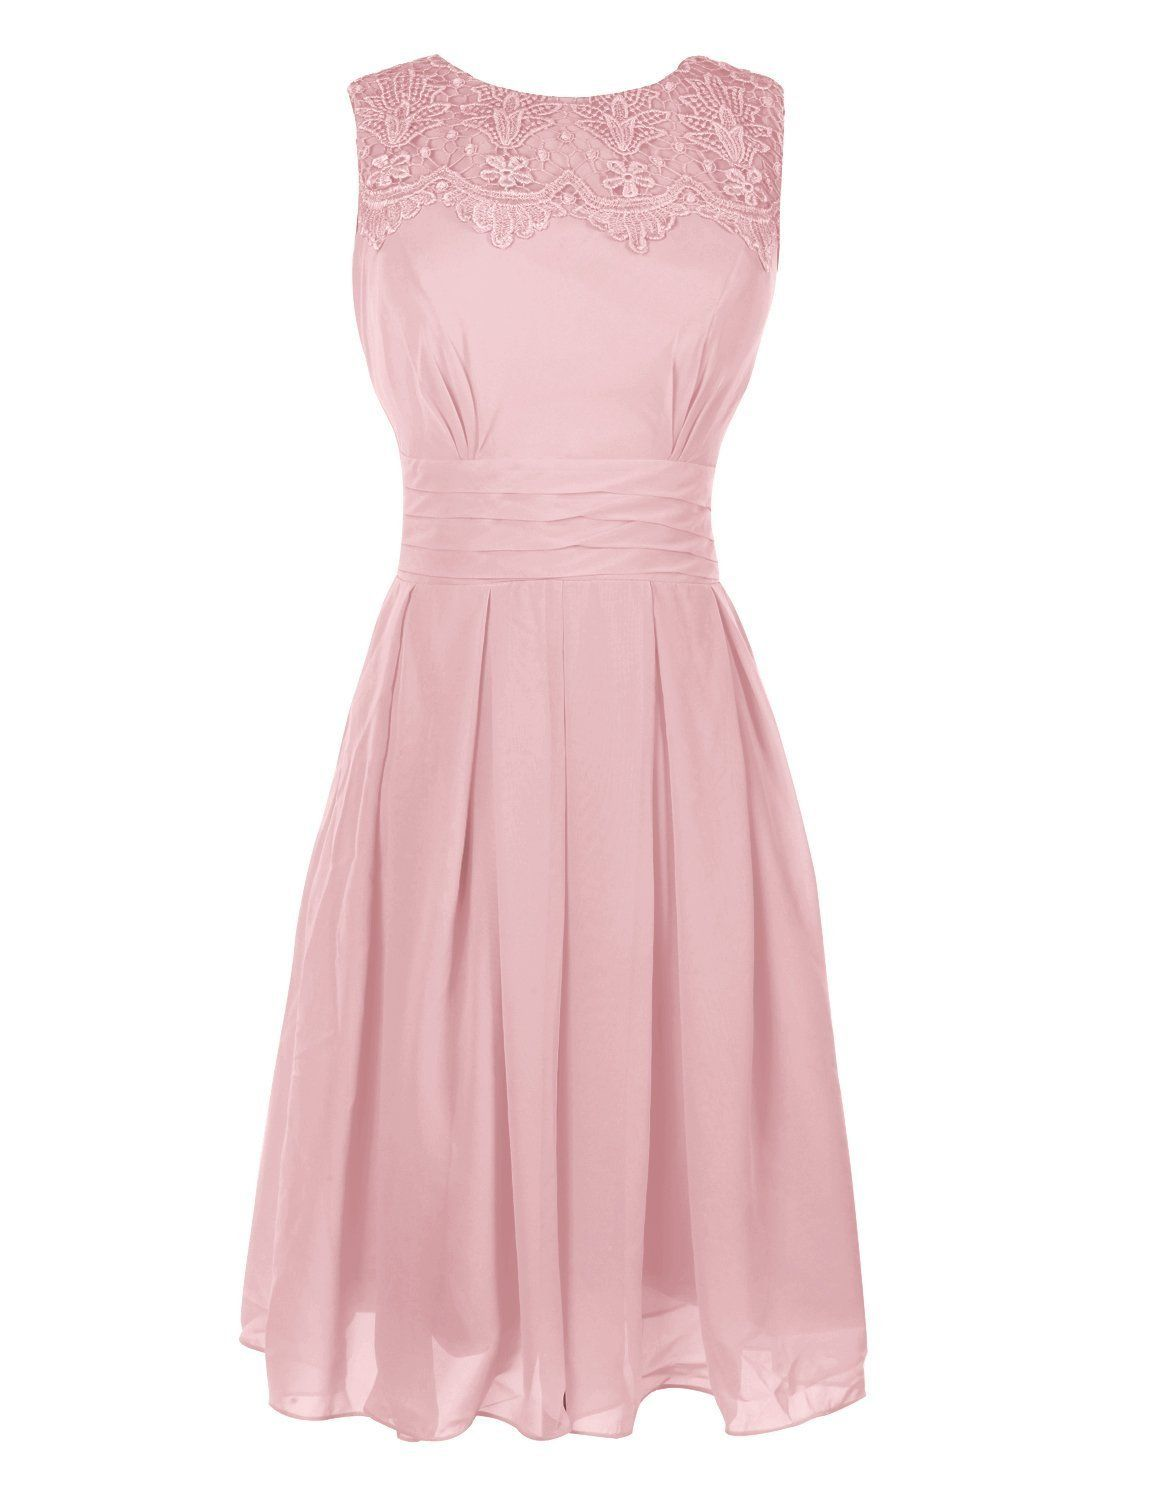 Ouman Short Prom Dress Bridesmaid Gowns with Appliques Neckline Blush Large